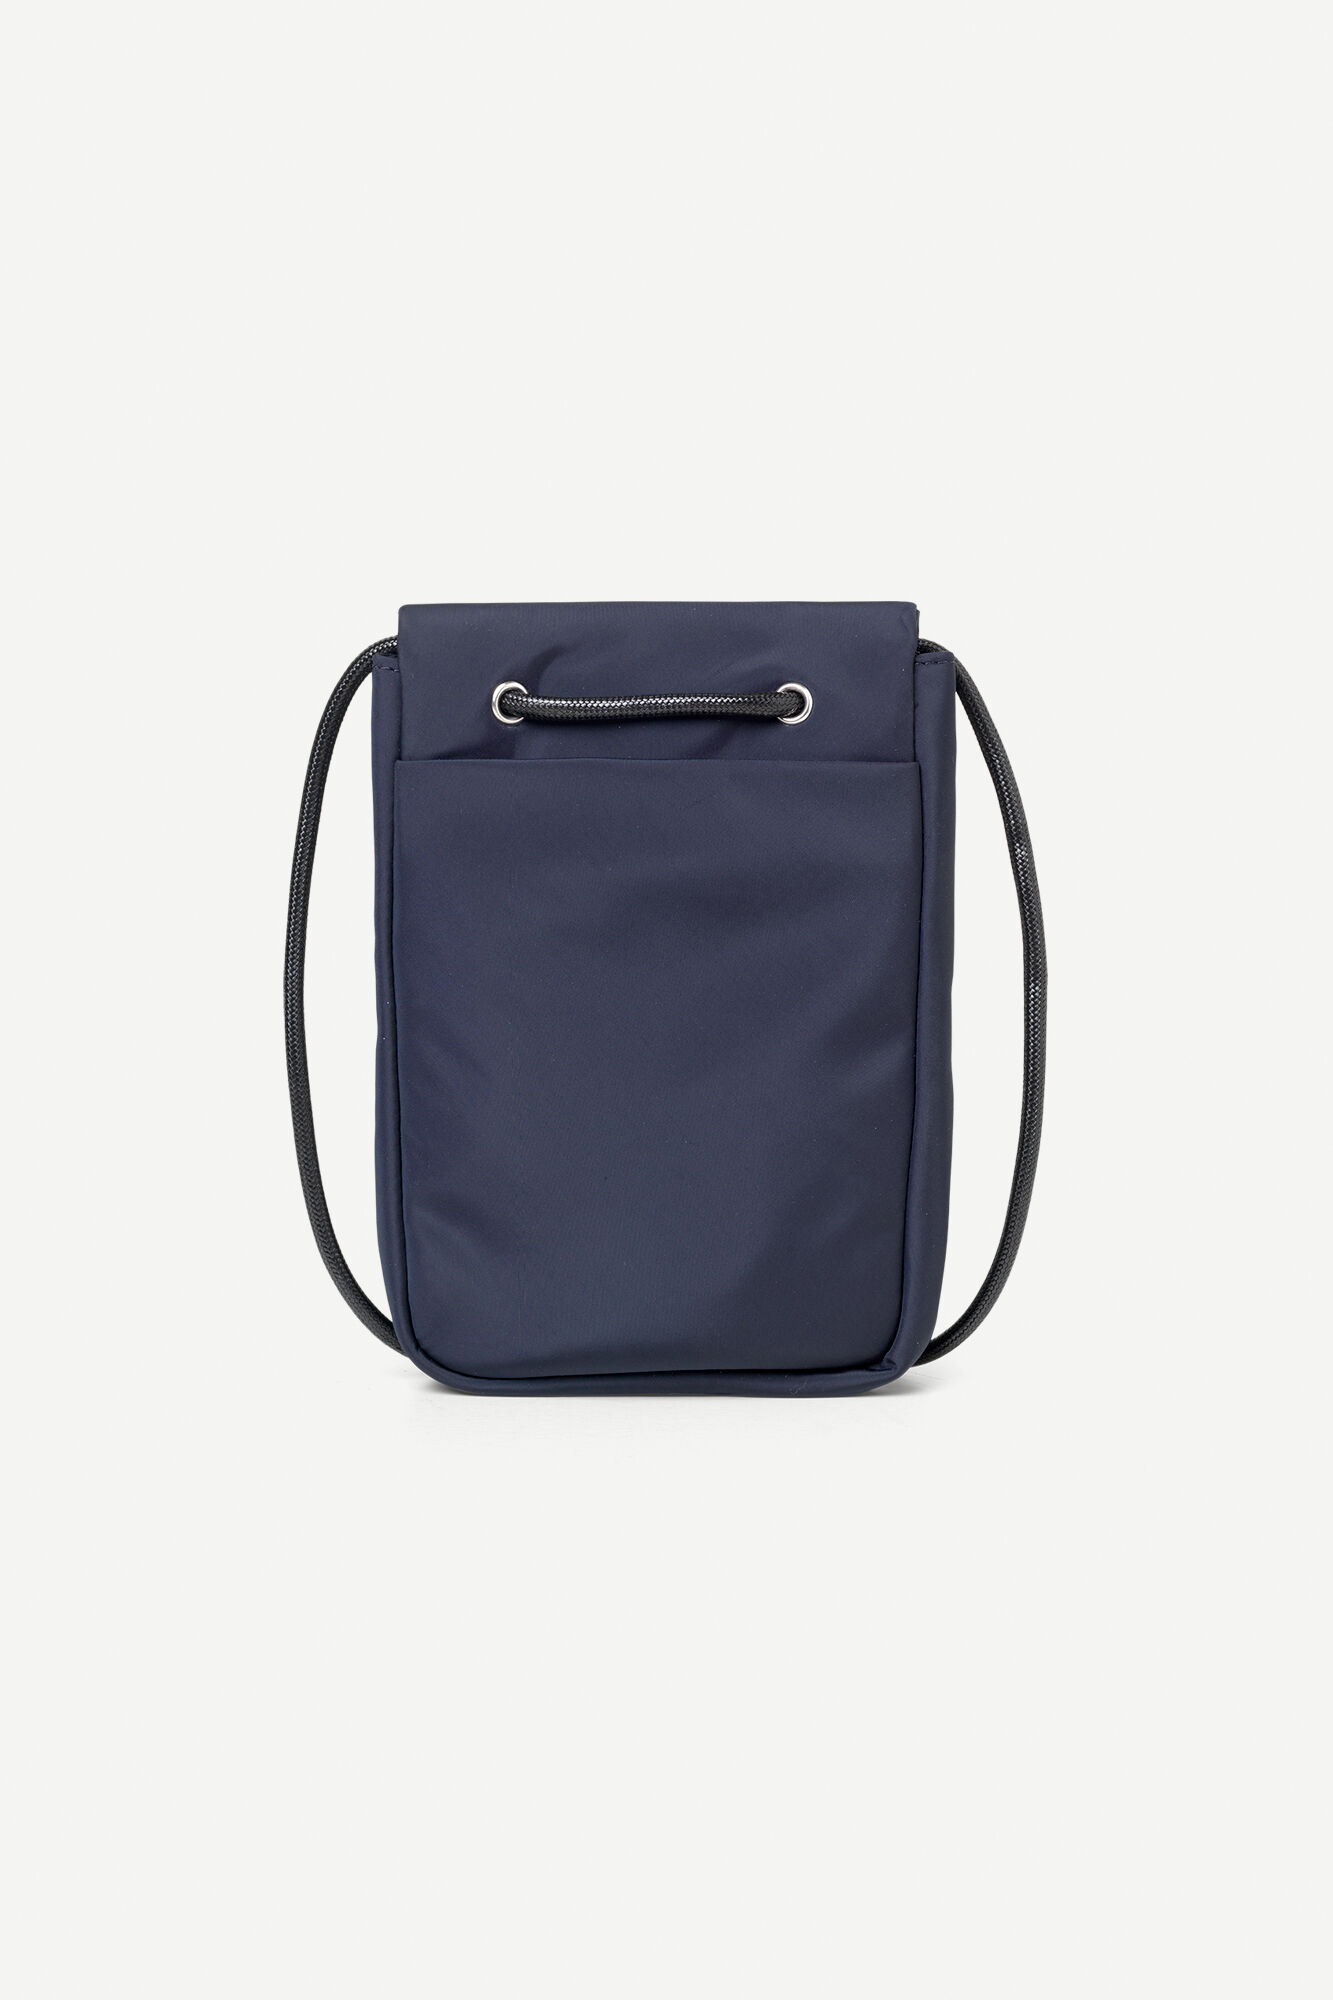 Molo neck bag 7408, SKY CAPTAIN